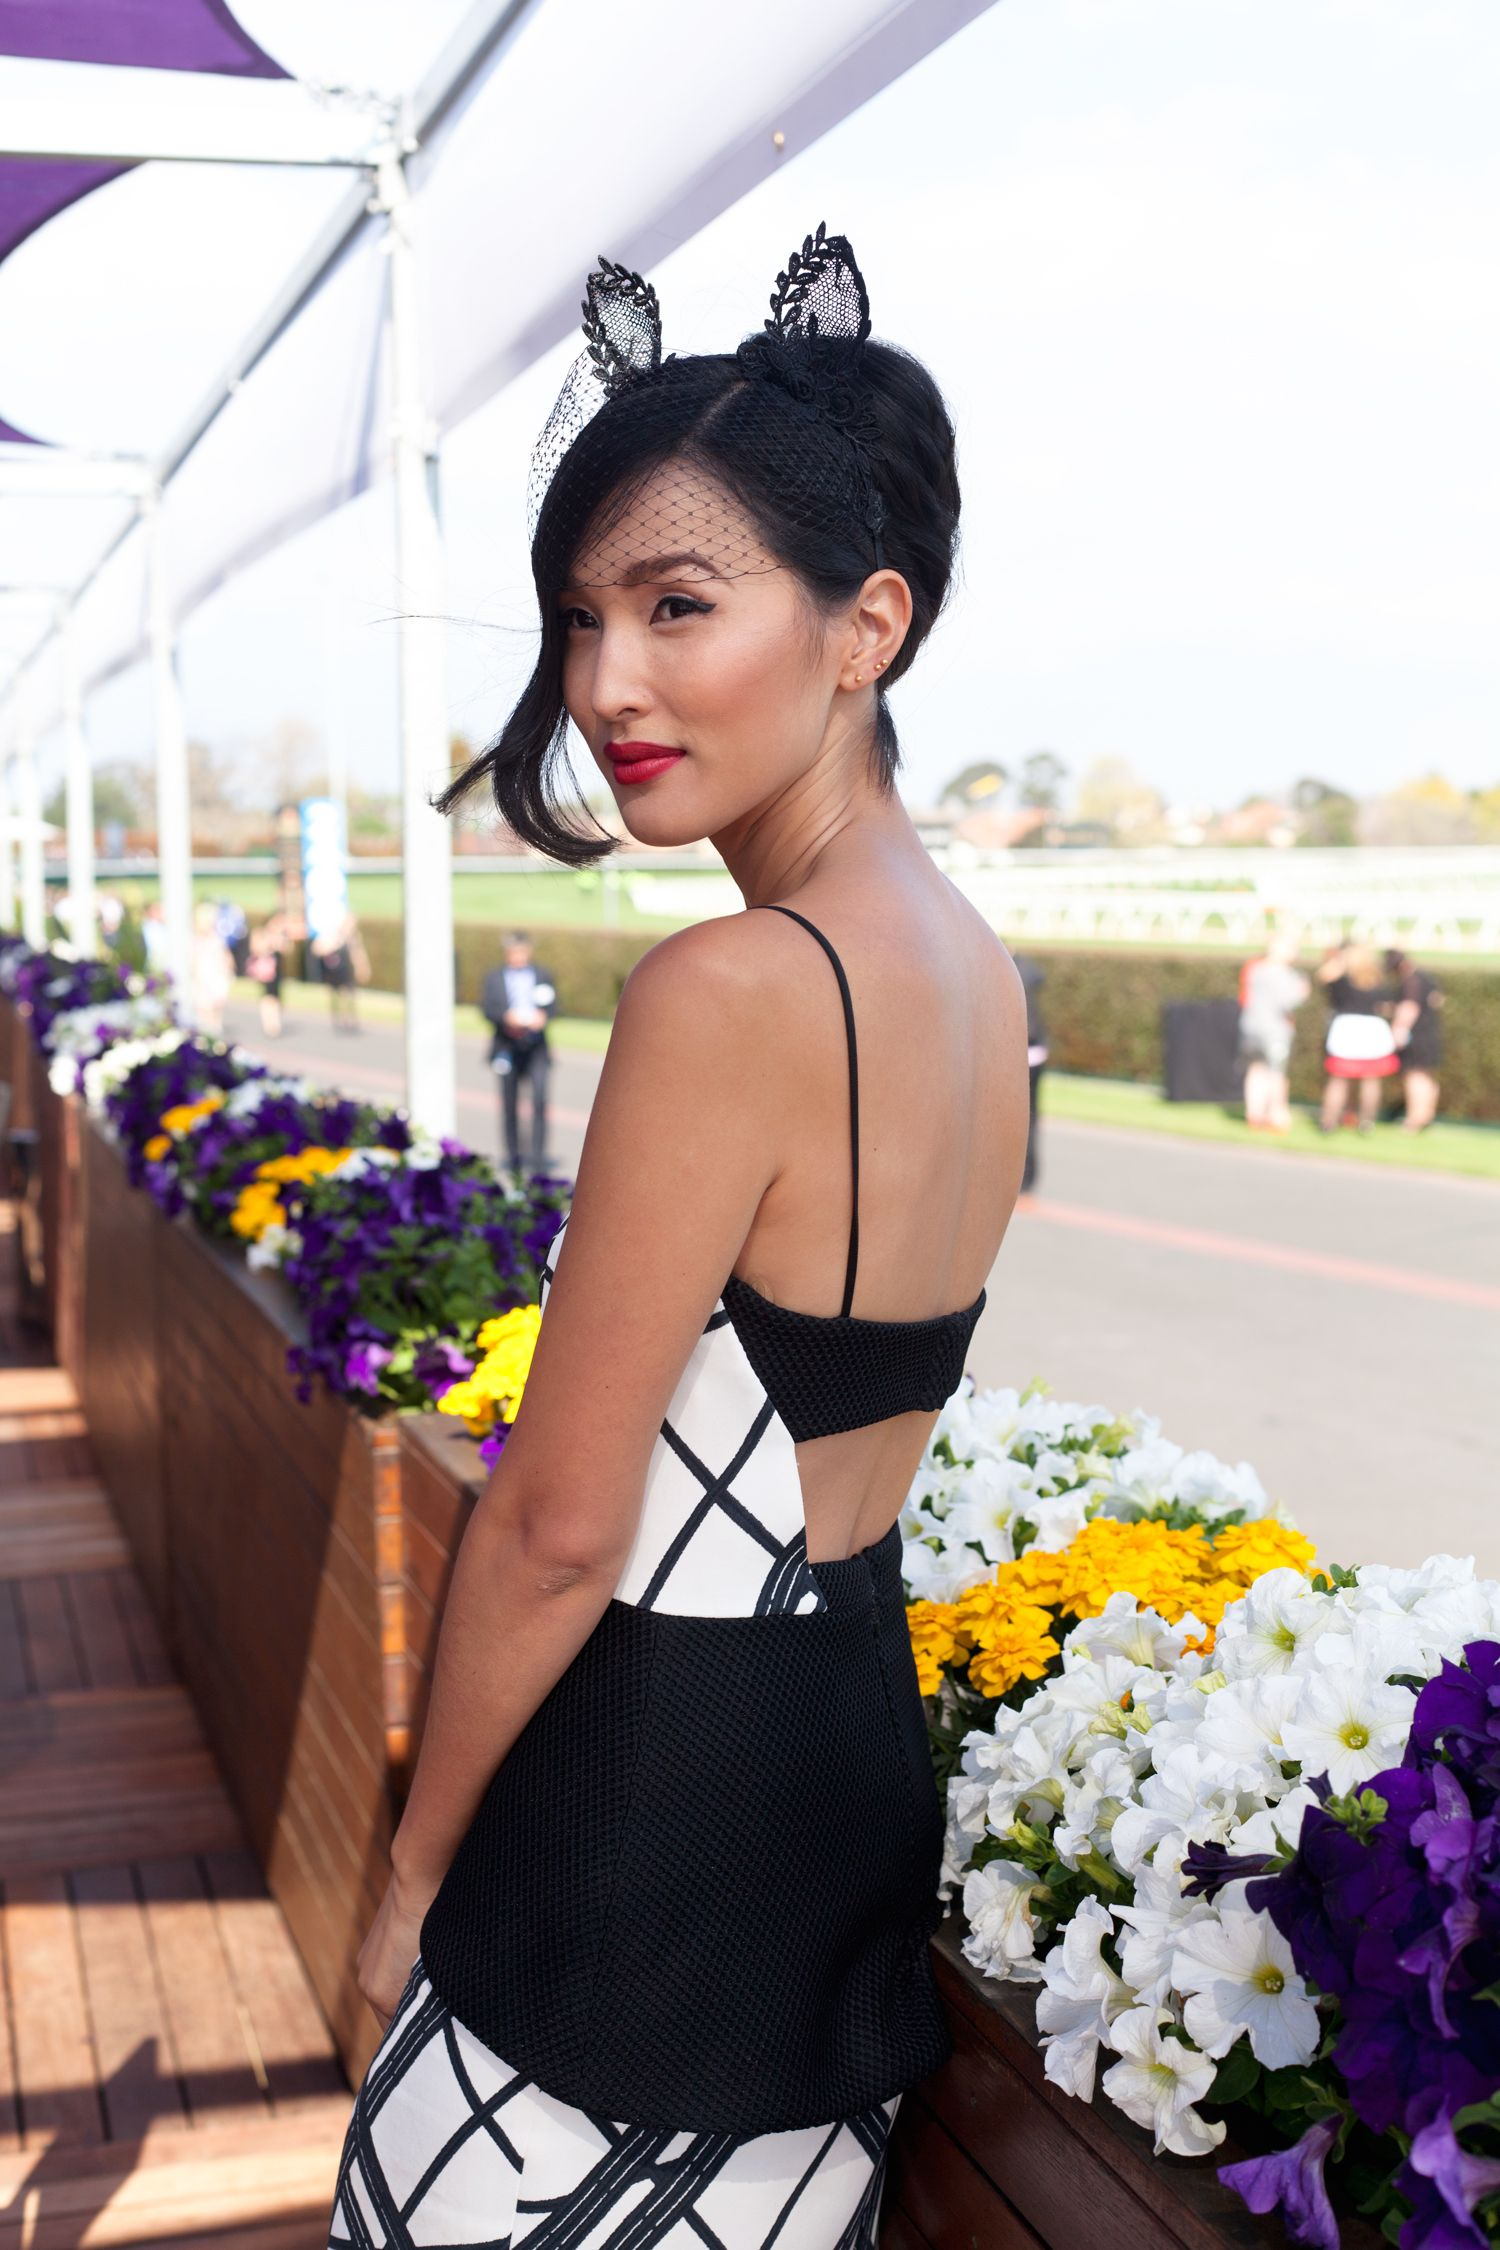 MELBOURNE Here we go, it's officially the start of spring racing season! One of the biggest moments in the Australian fashion calendar.